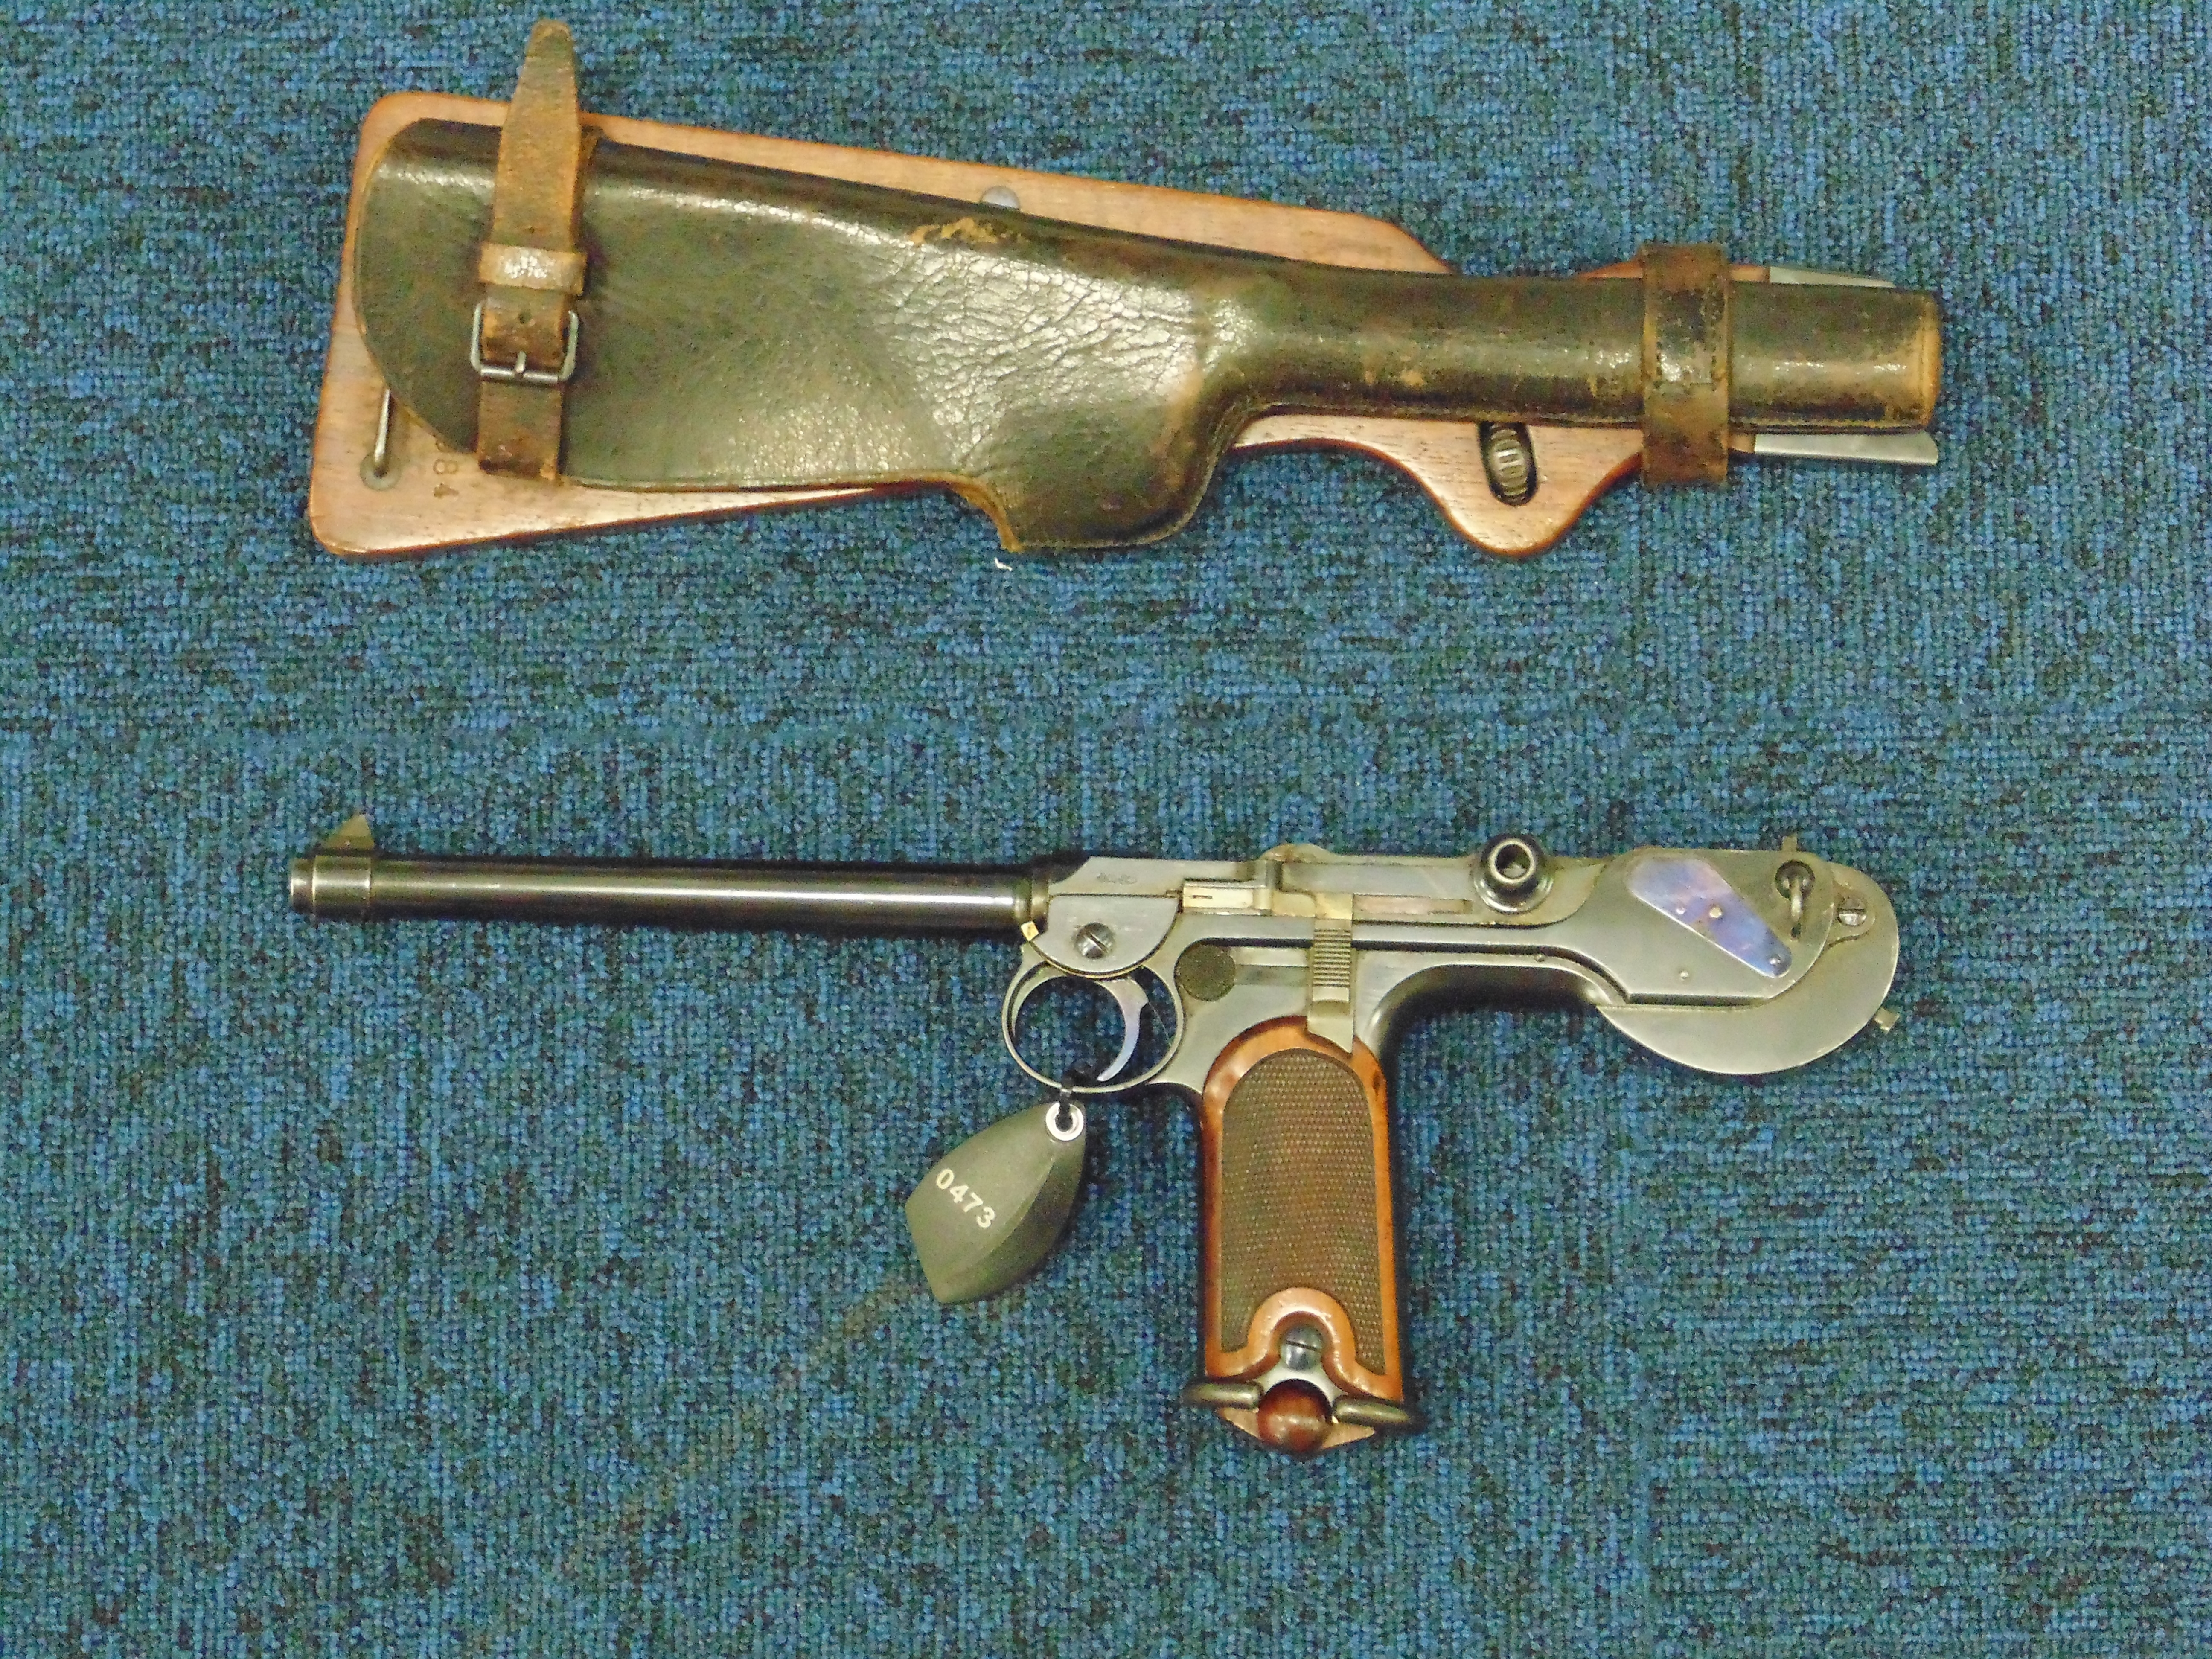 The Borchardt C93 was the Luger's immediate ancestor, and the first practical automatic pistol, preceding the Mauser C96 by several years